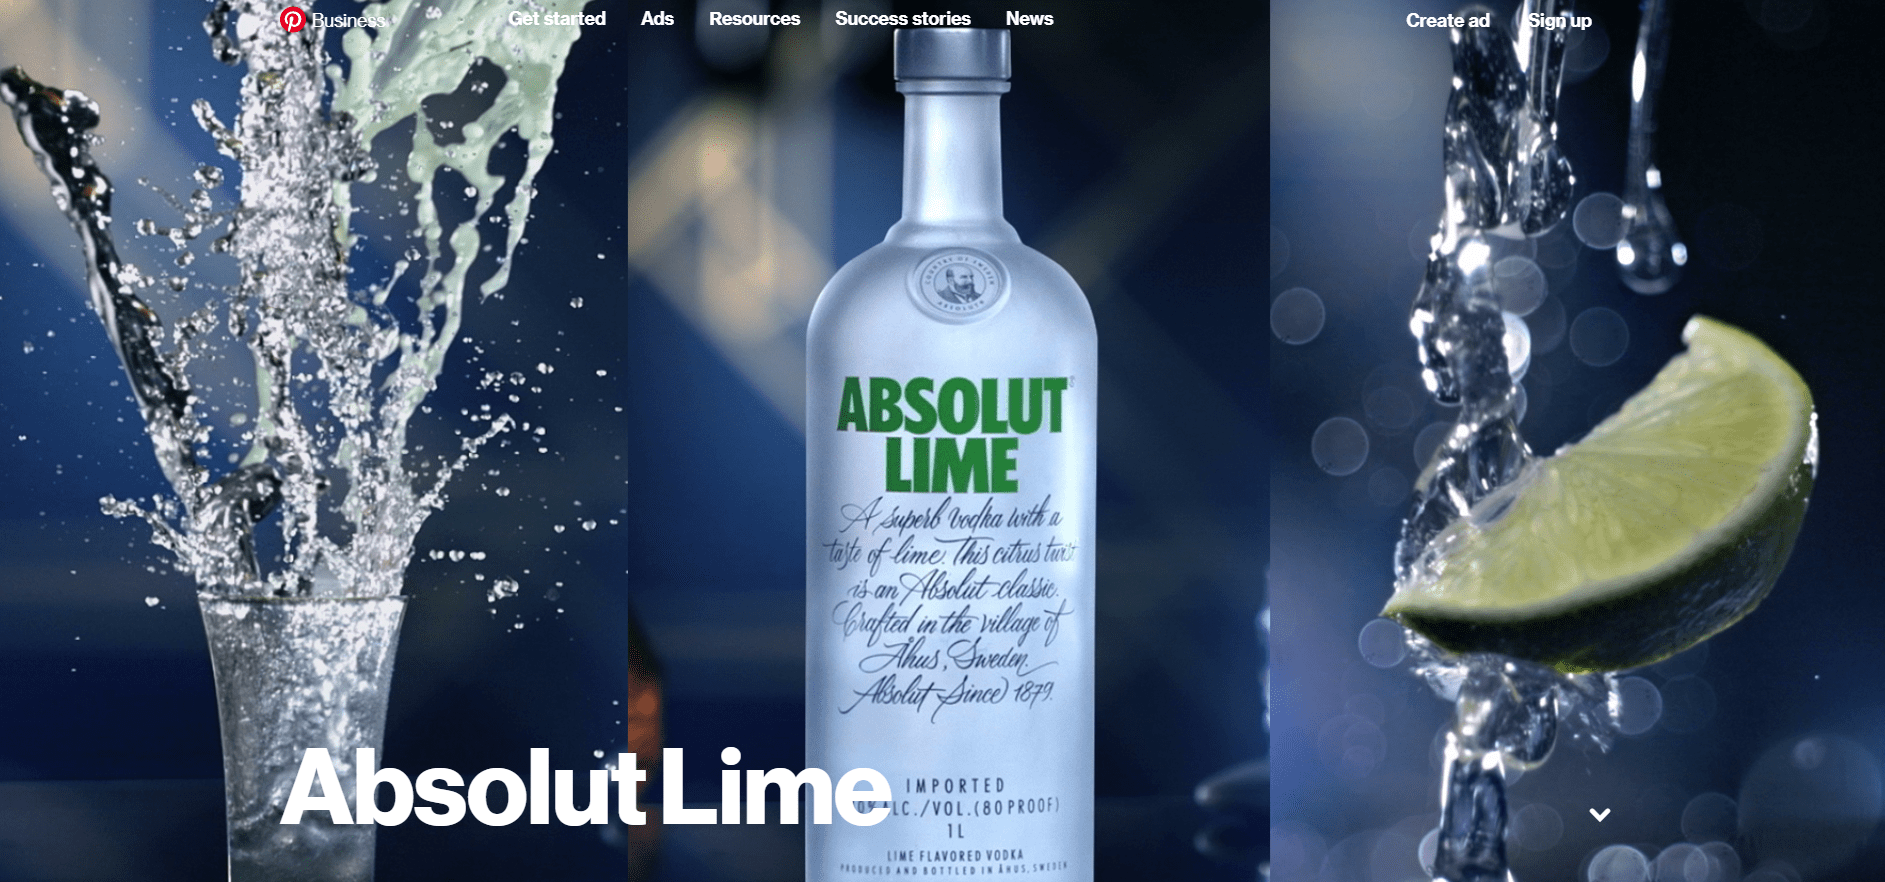 Pinterest-for-business-absolut-lime